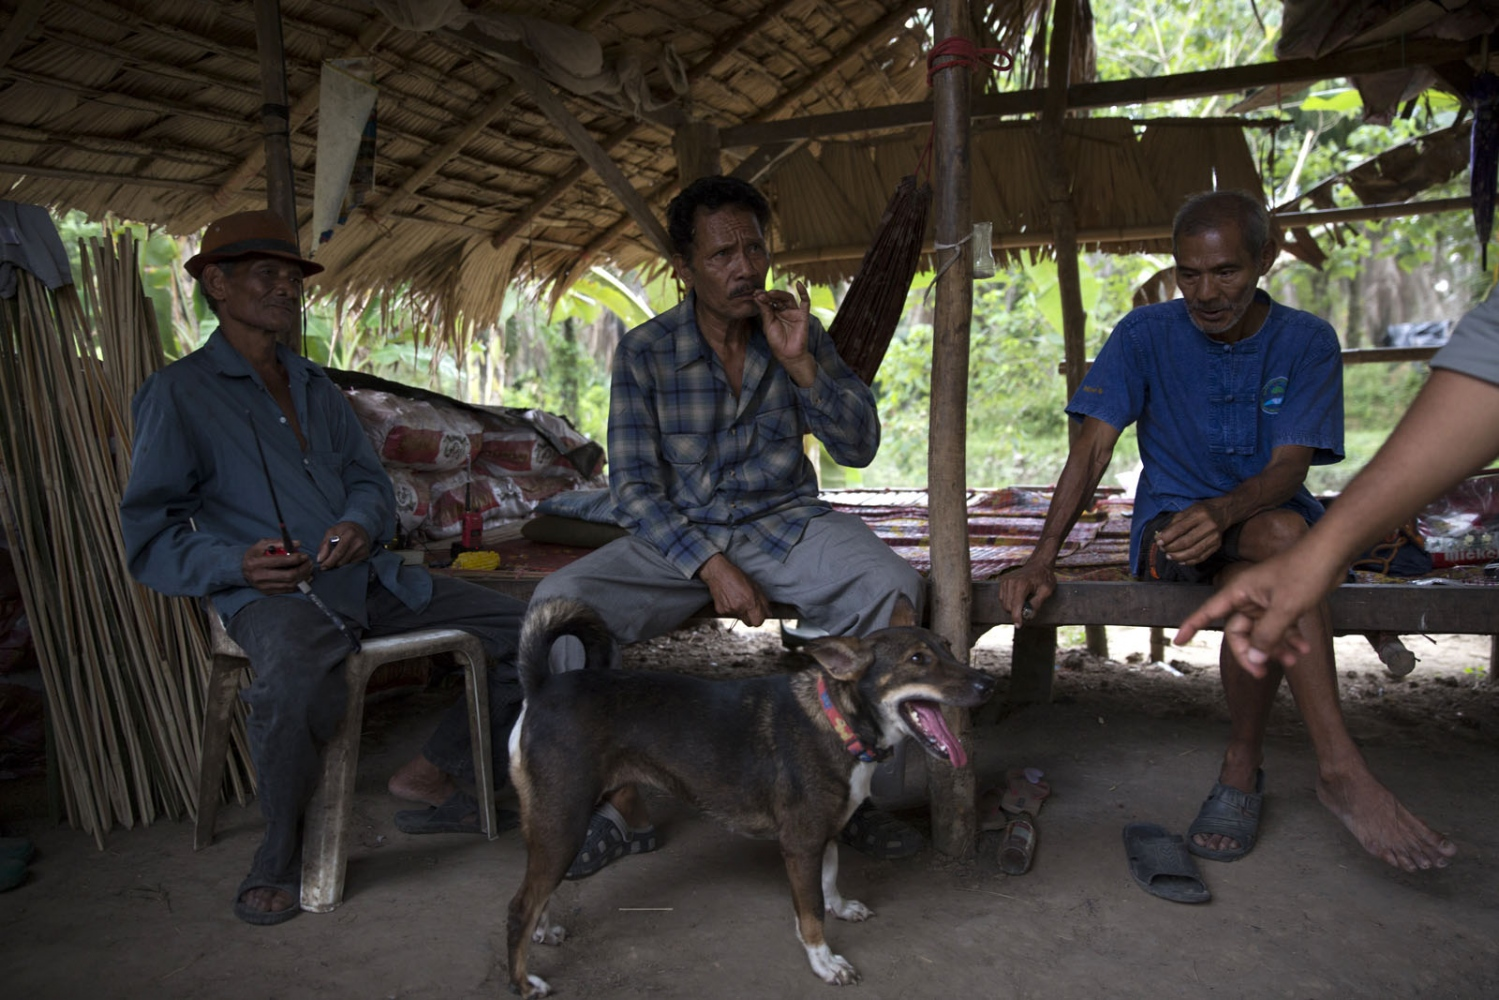 Prasit Rakhungthong, 61, (centre) one of the village leaders sits and talks with other village members in Bunker No.1 following the visit of local officials to discuss the construction of a water reservoir.